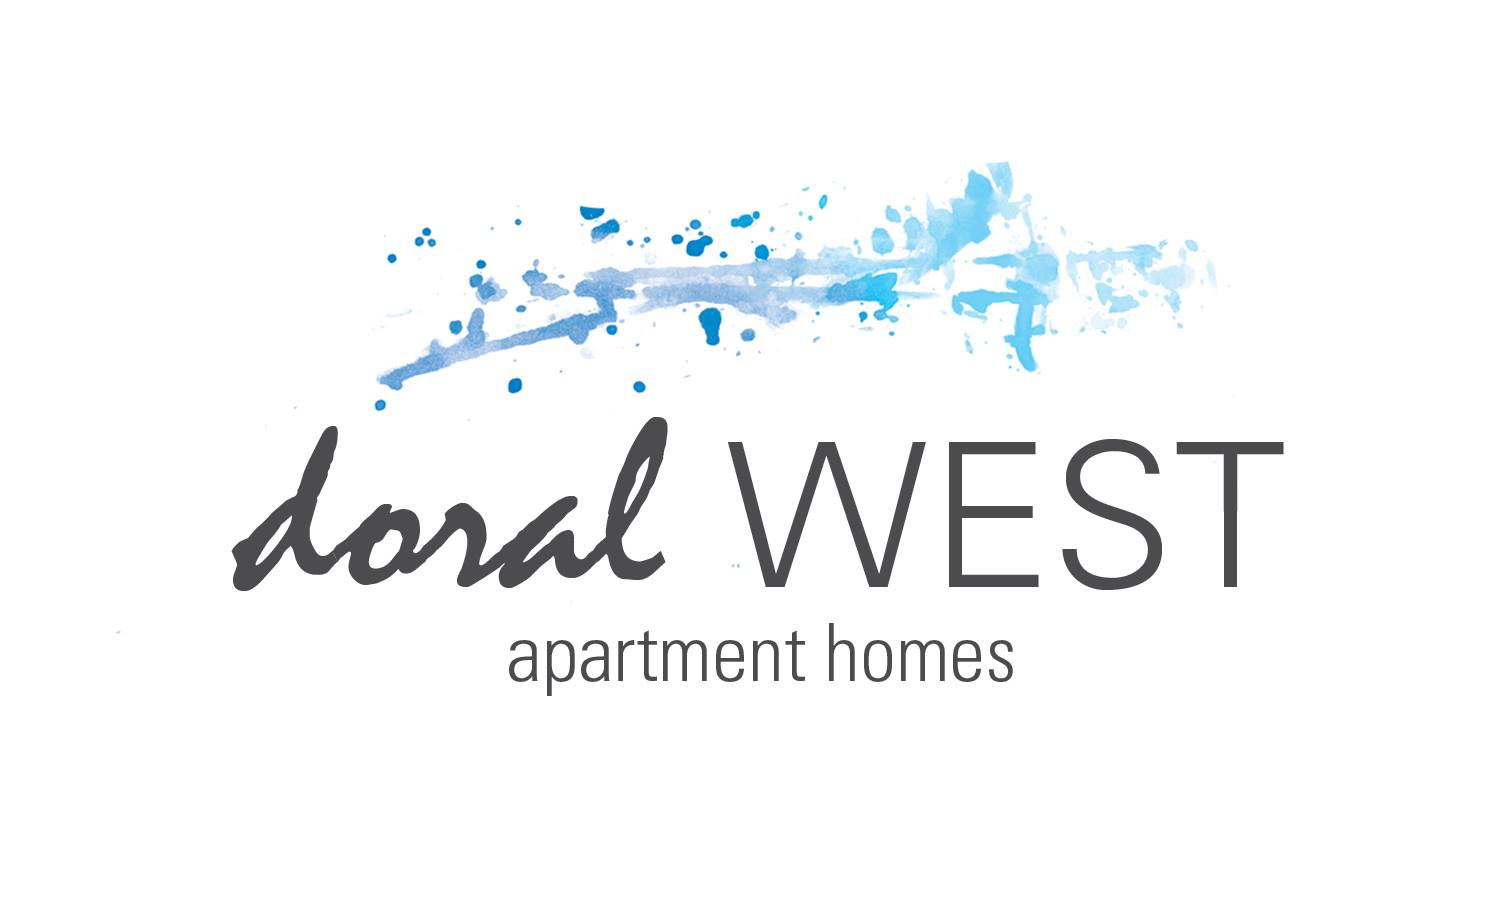 doral-west-apartments-chamber-of-commerce-logo